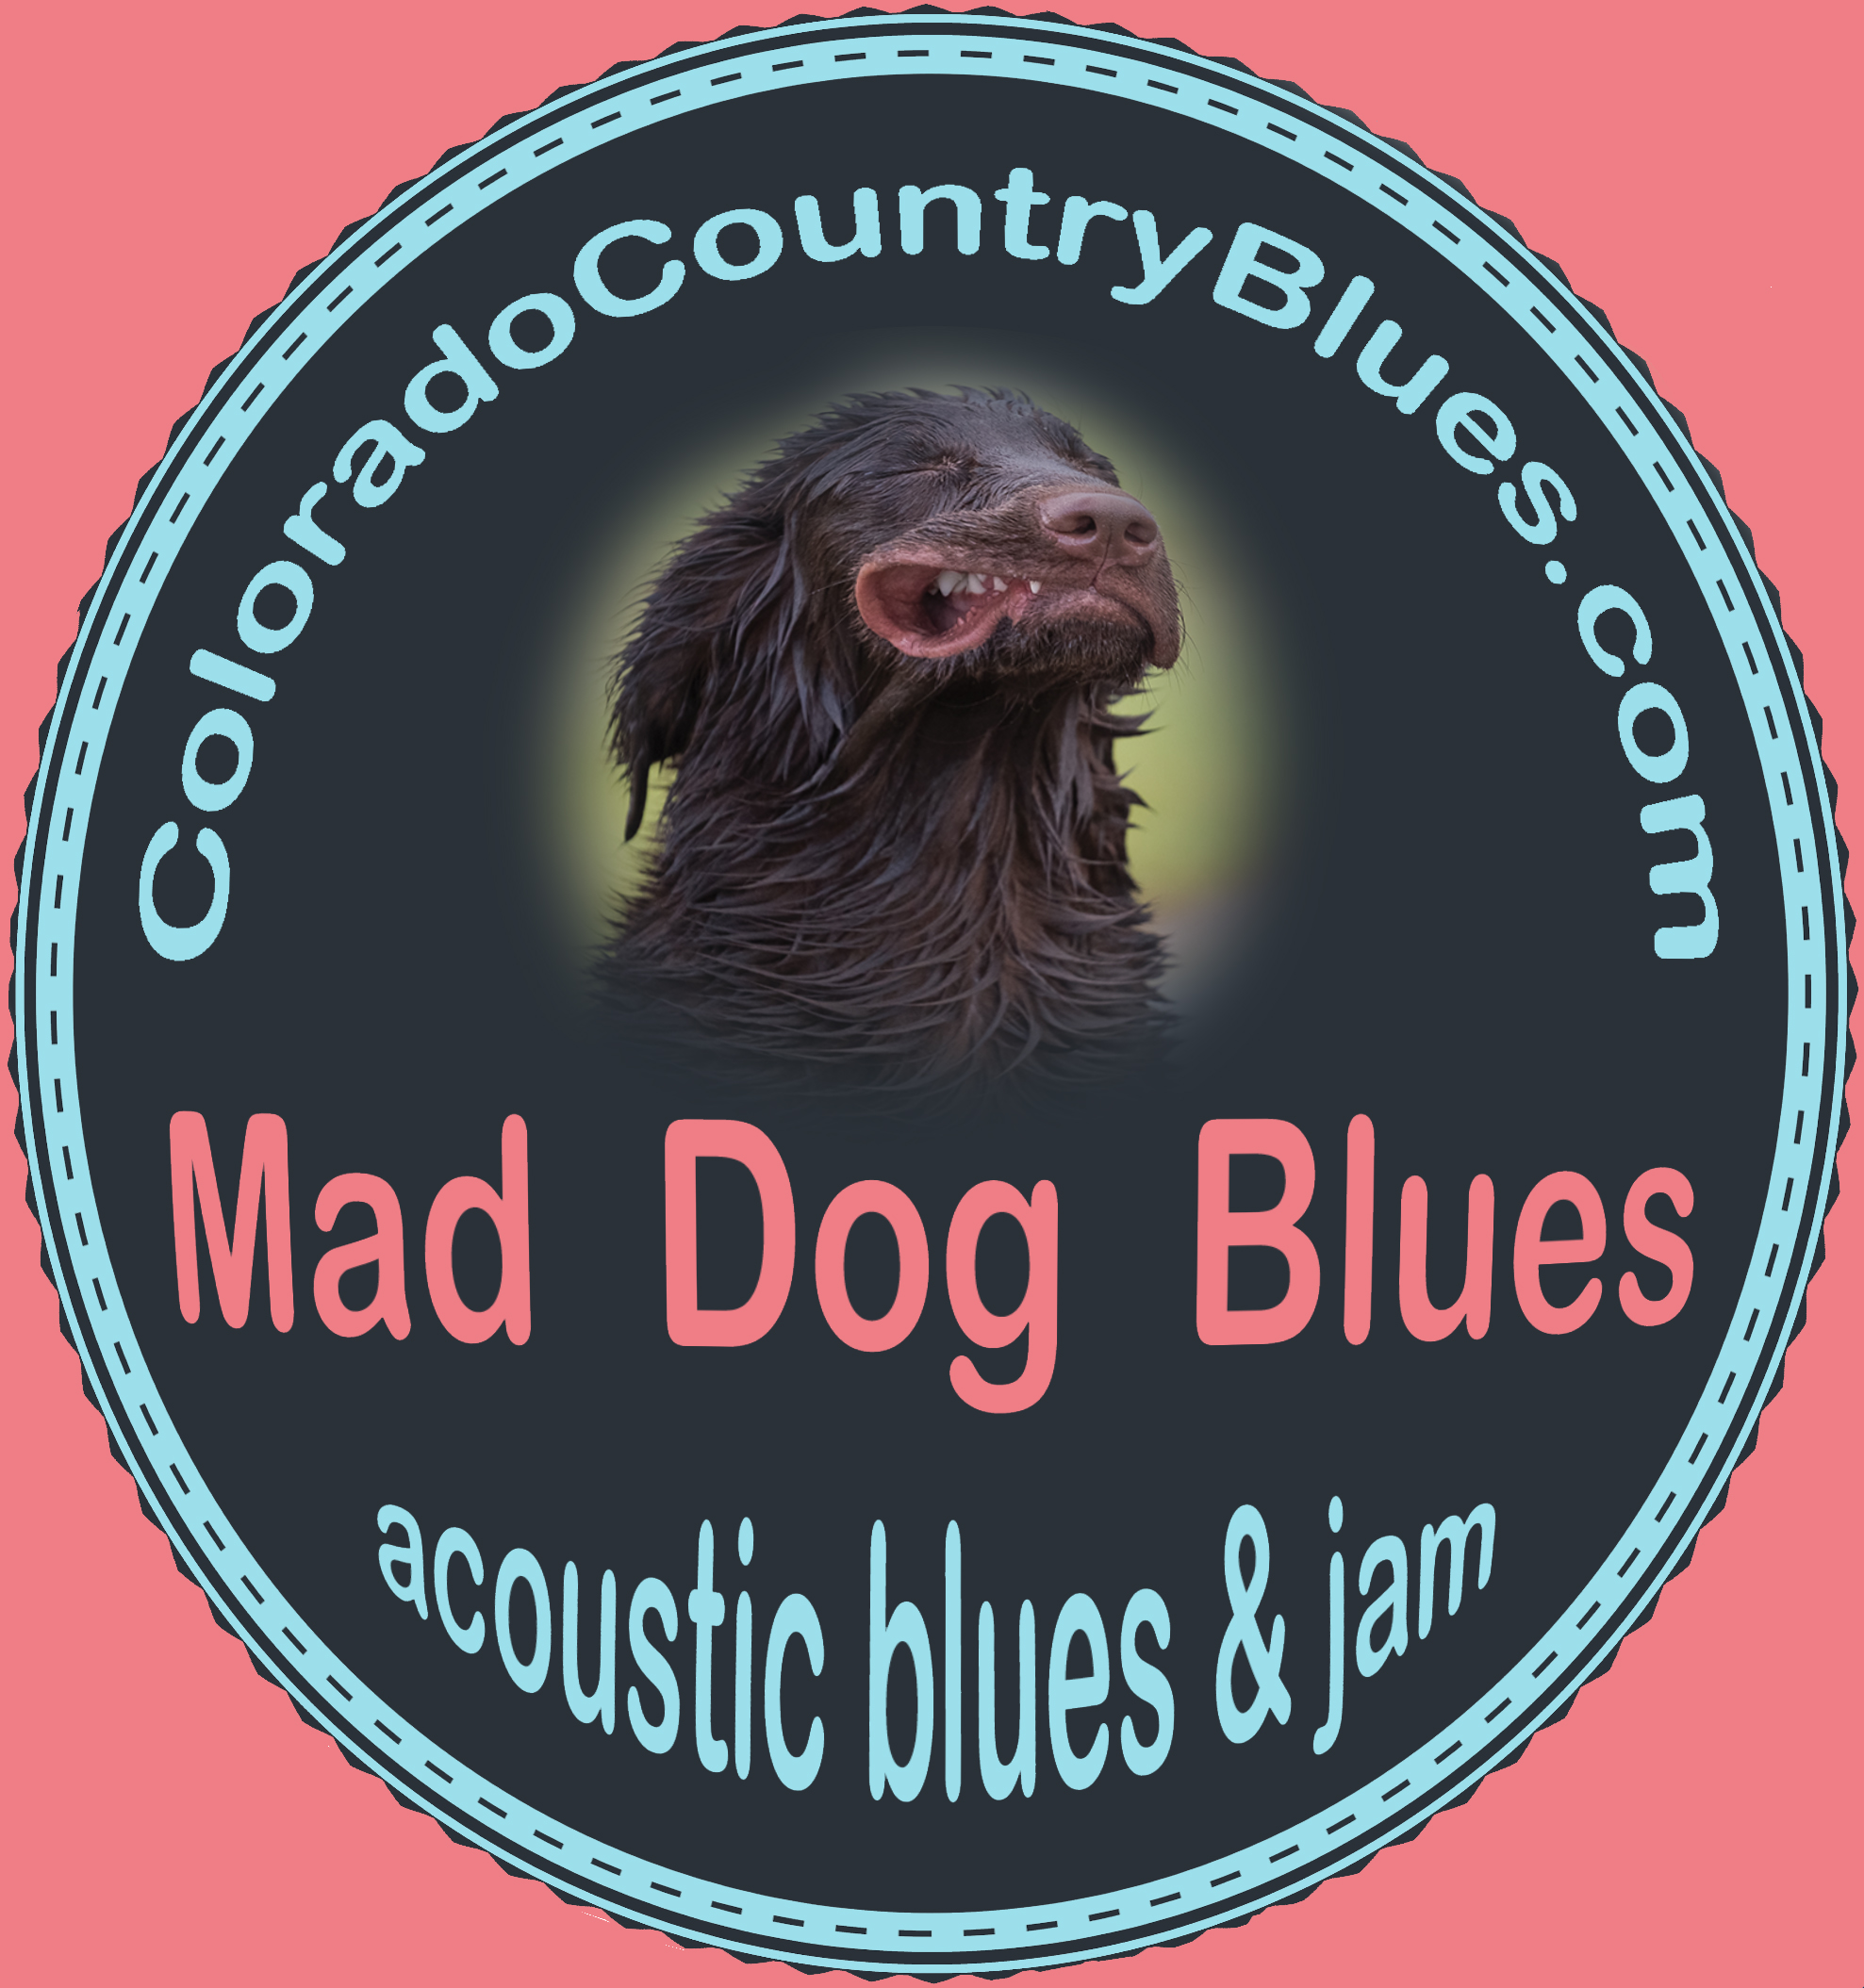 The Mad Dog Blues Experience